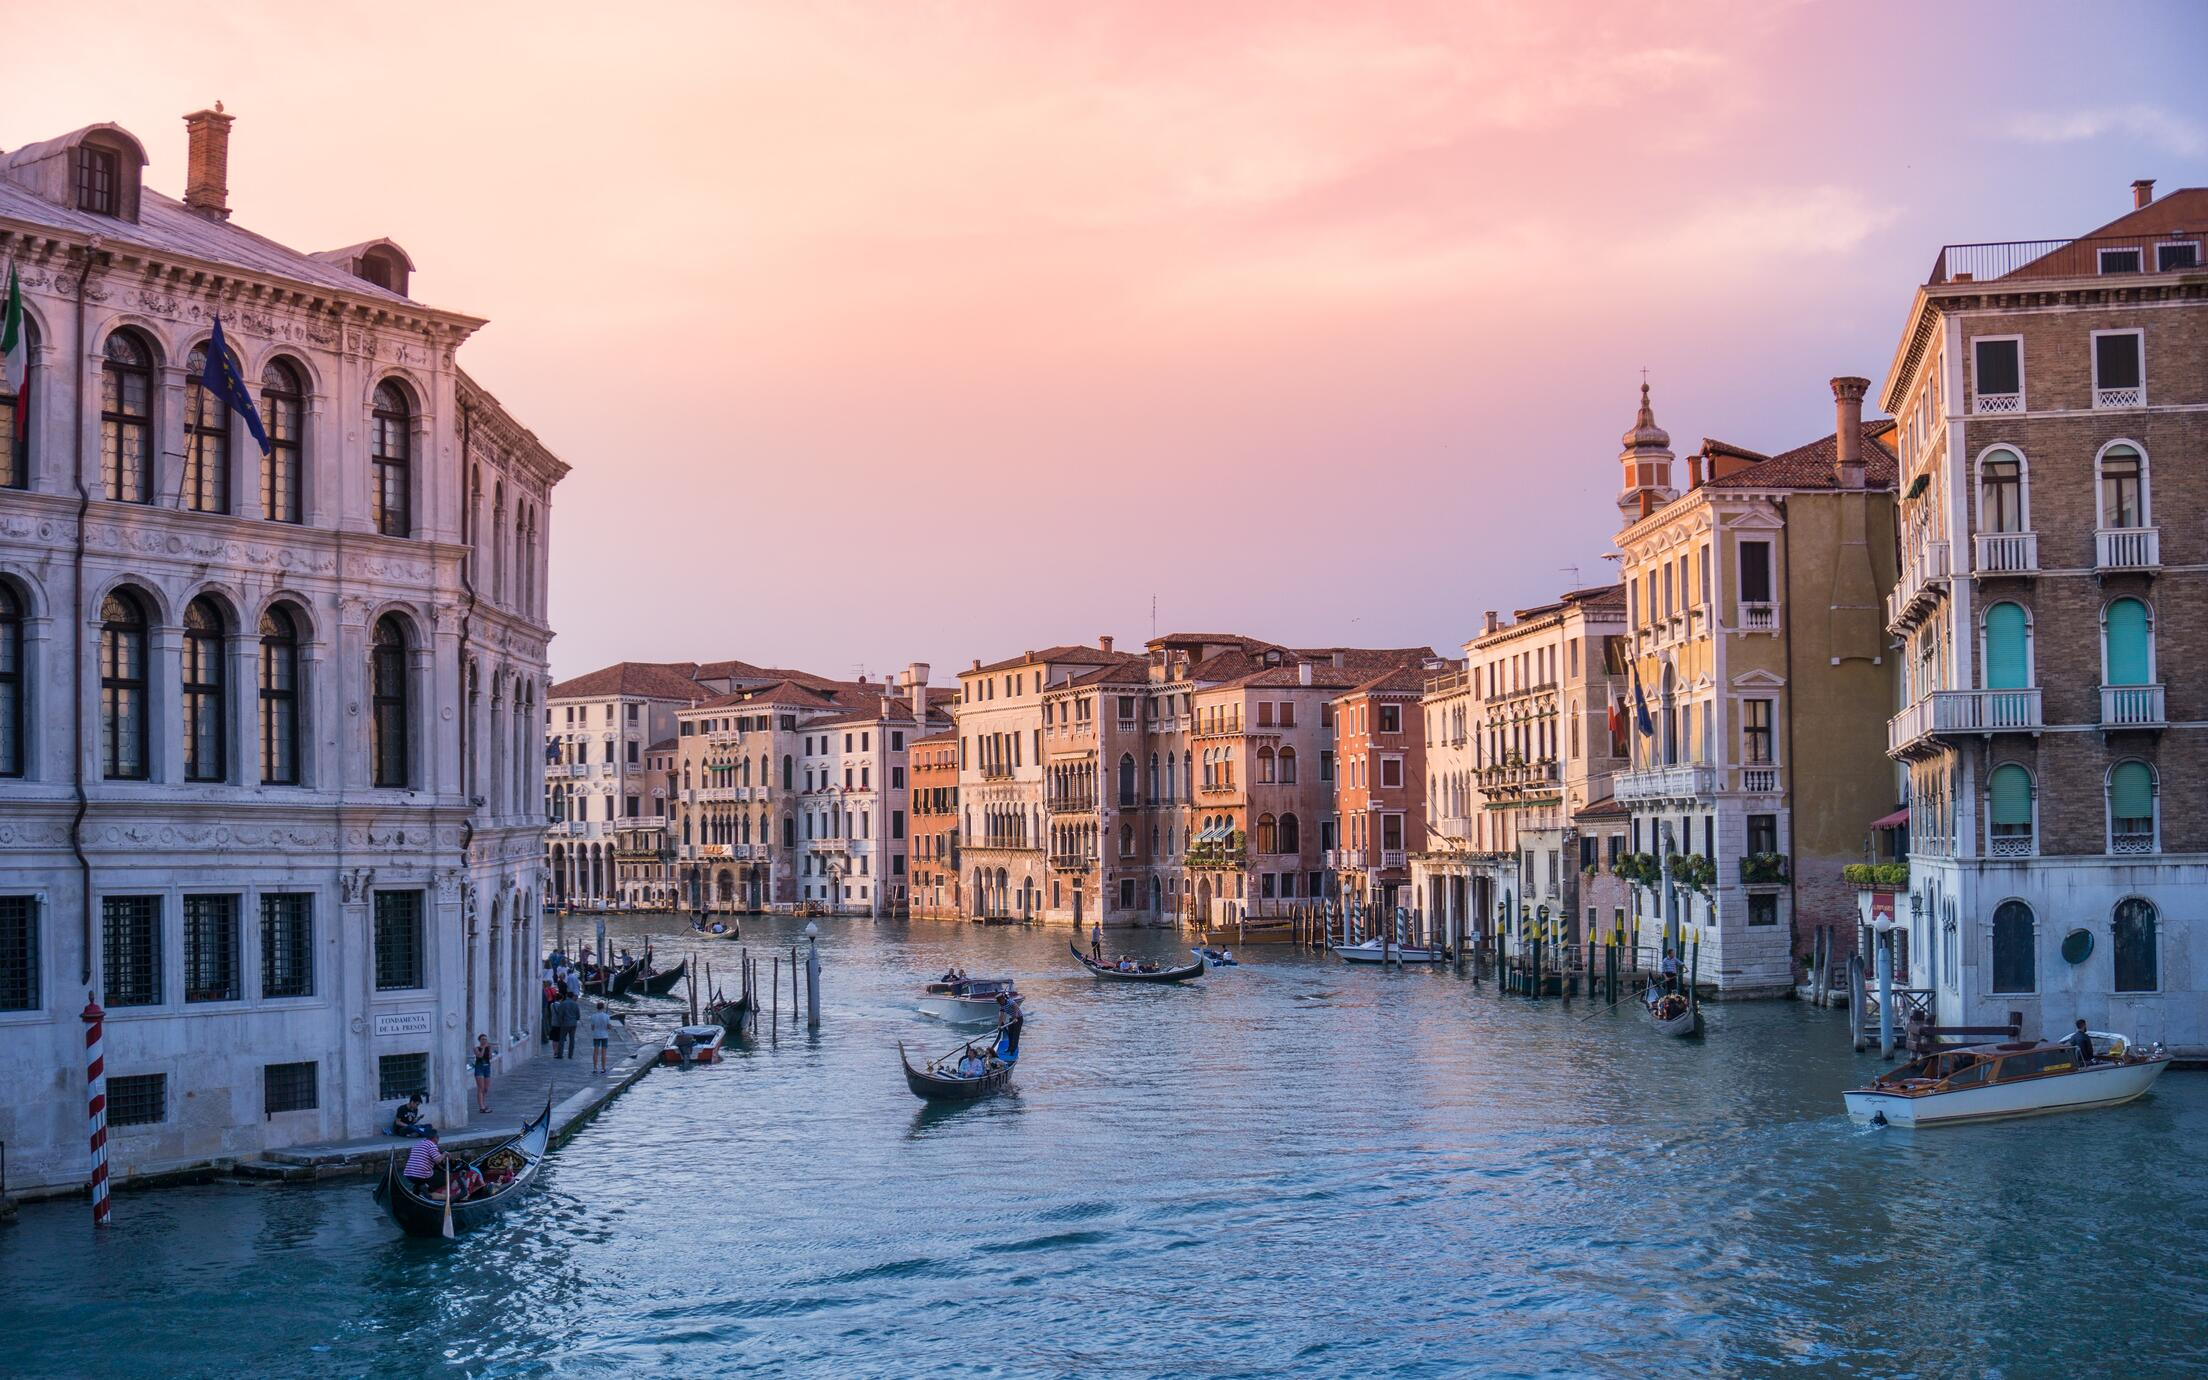 A picture of the canals of Venice at dusk.